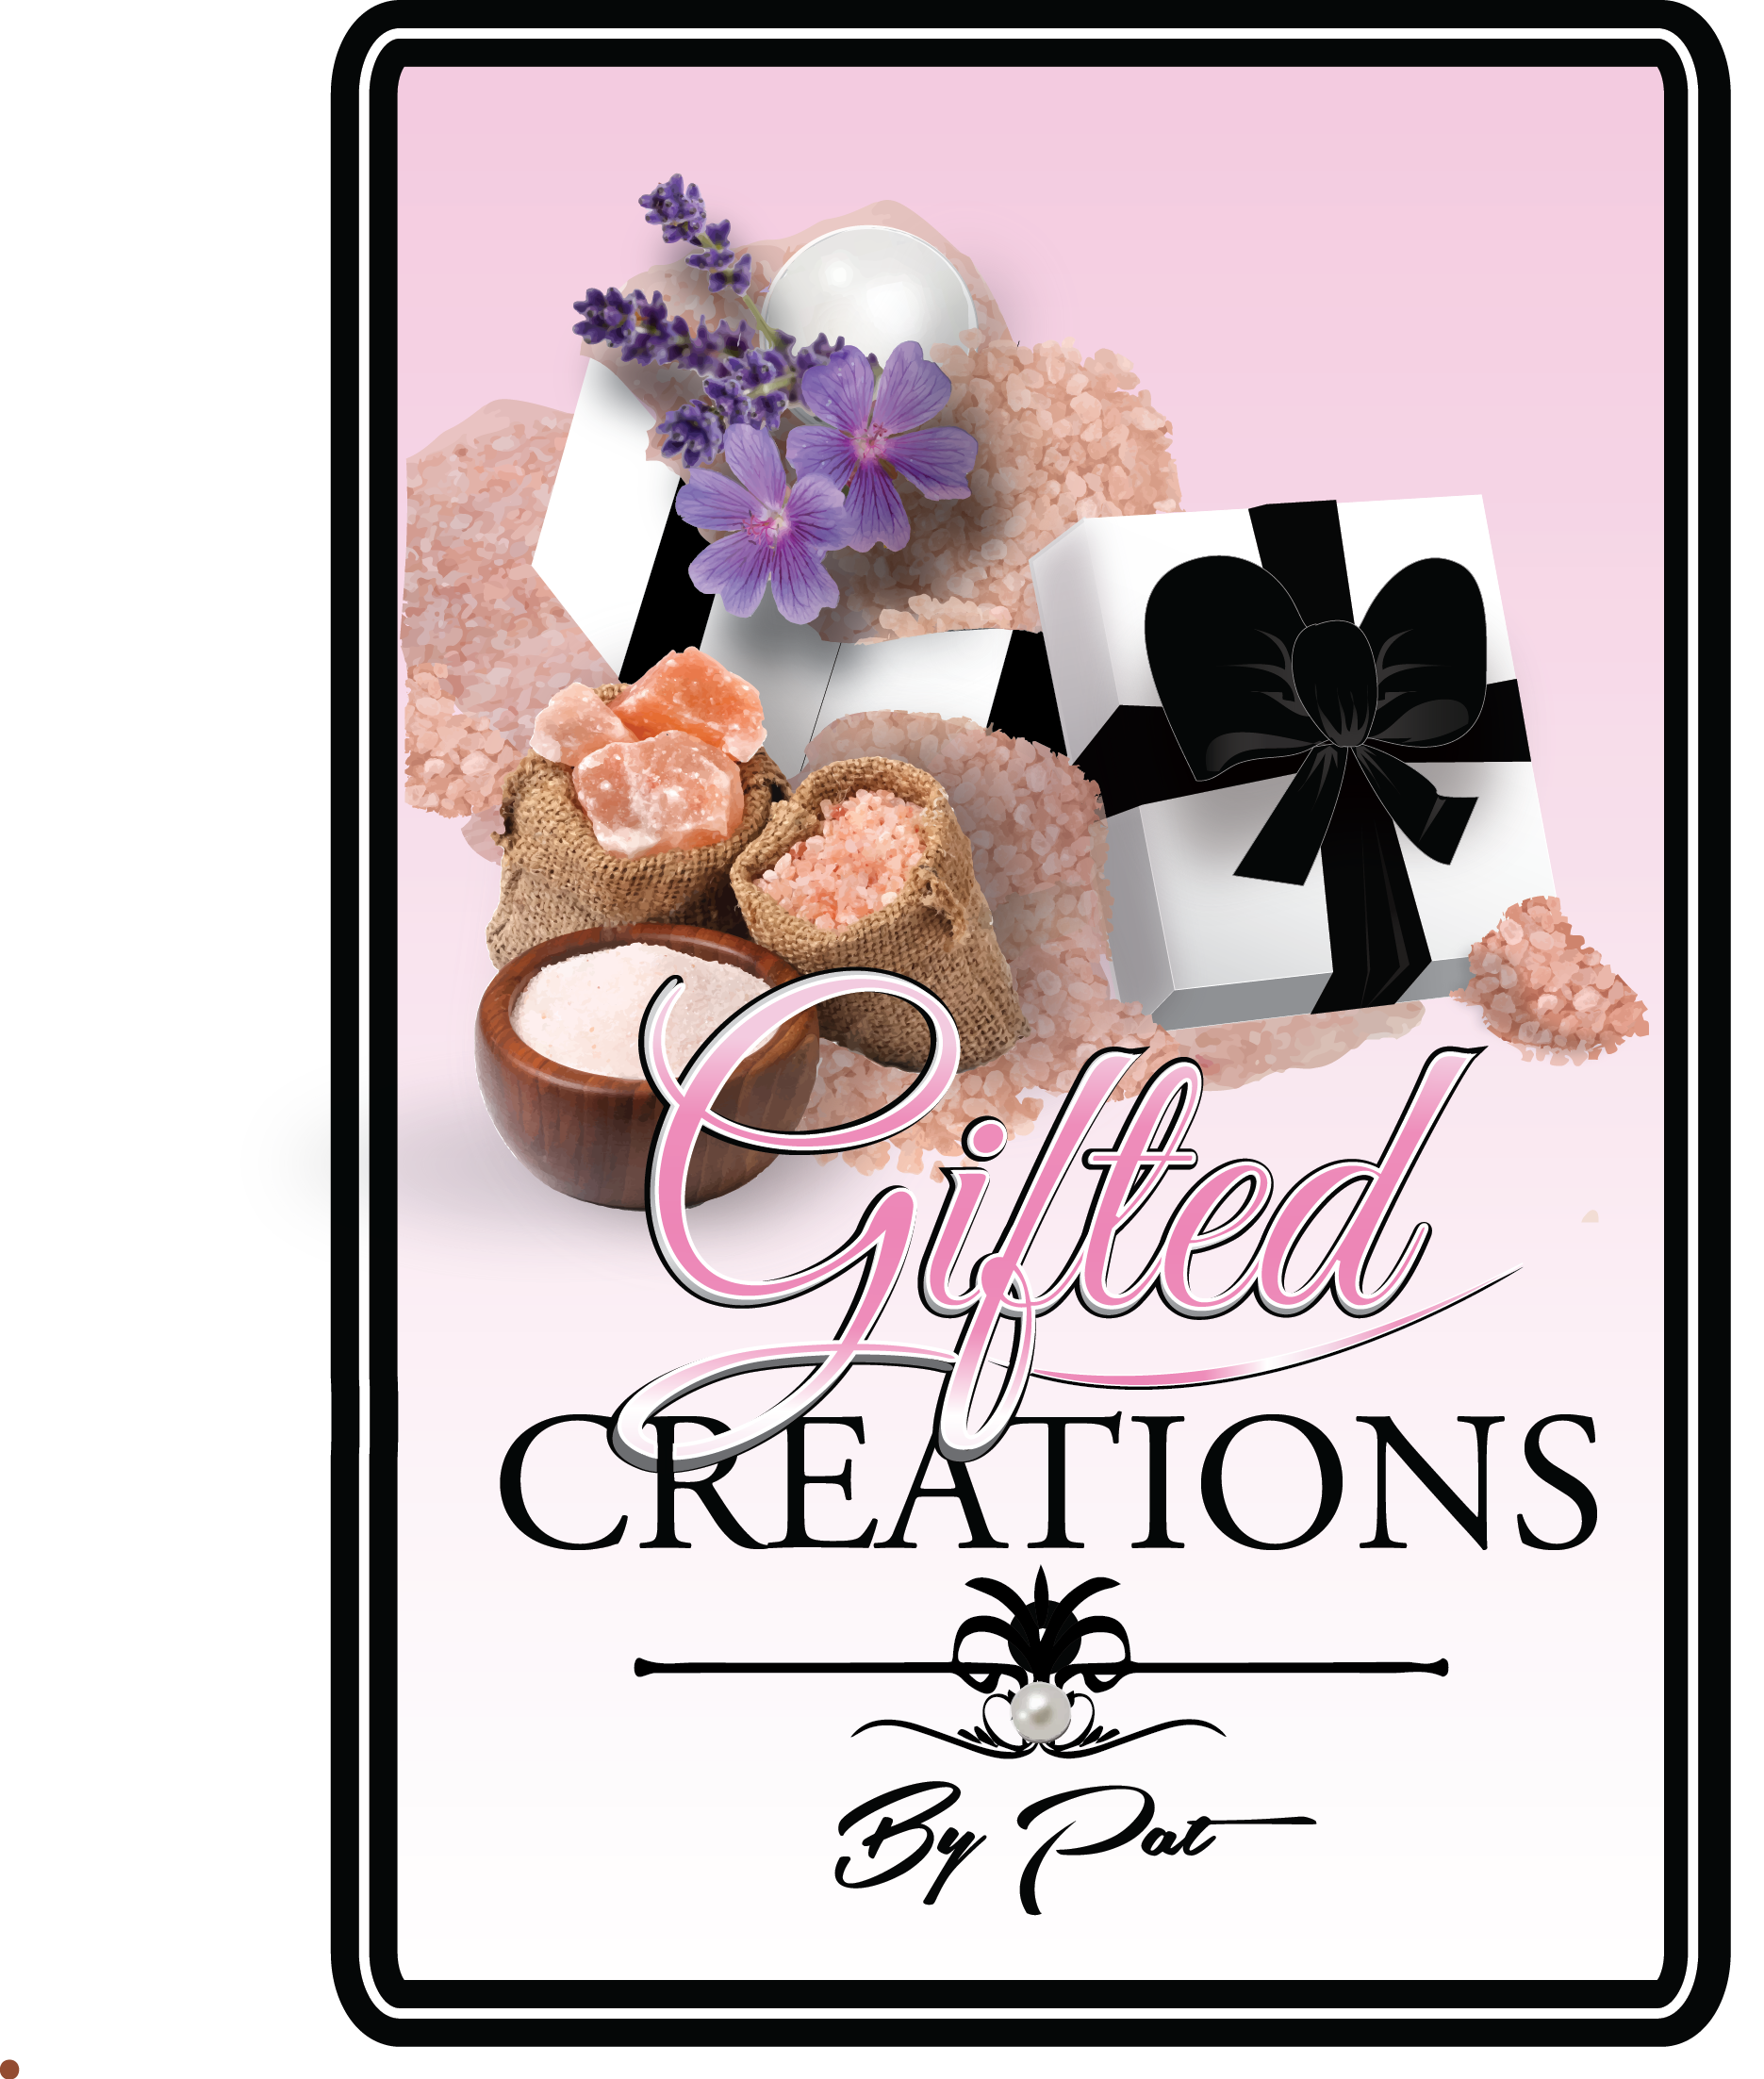 Gifted_Creations_byPat